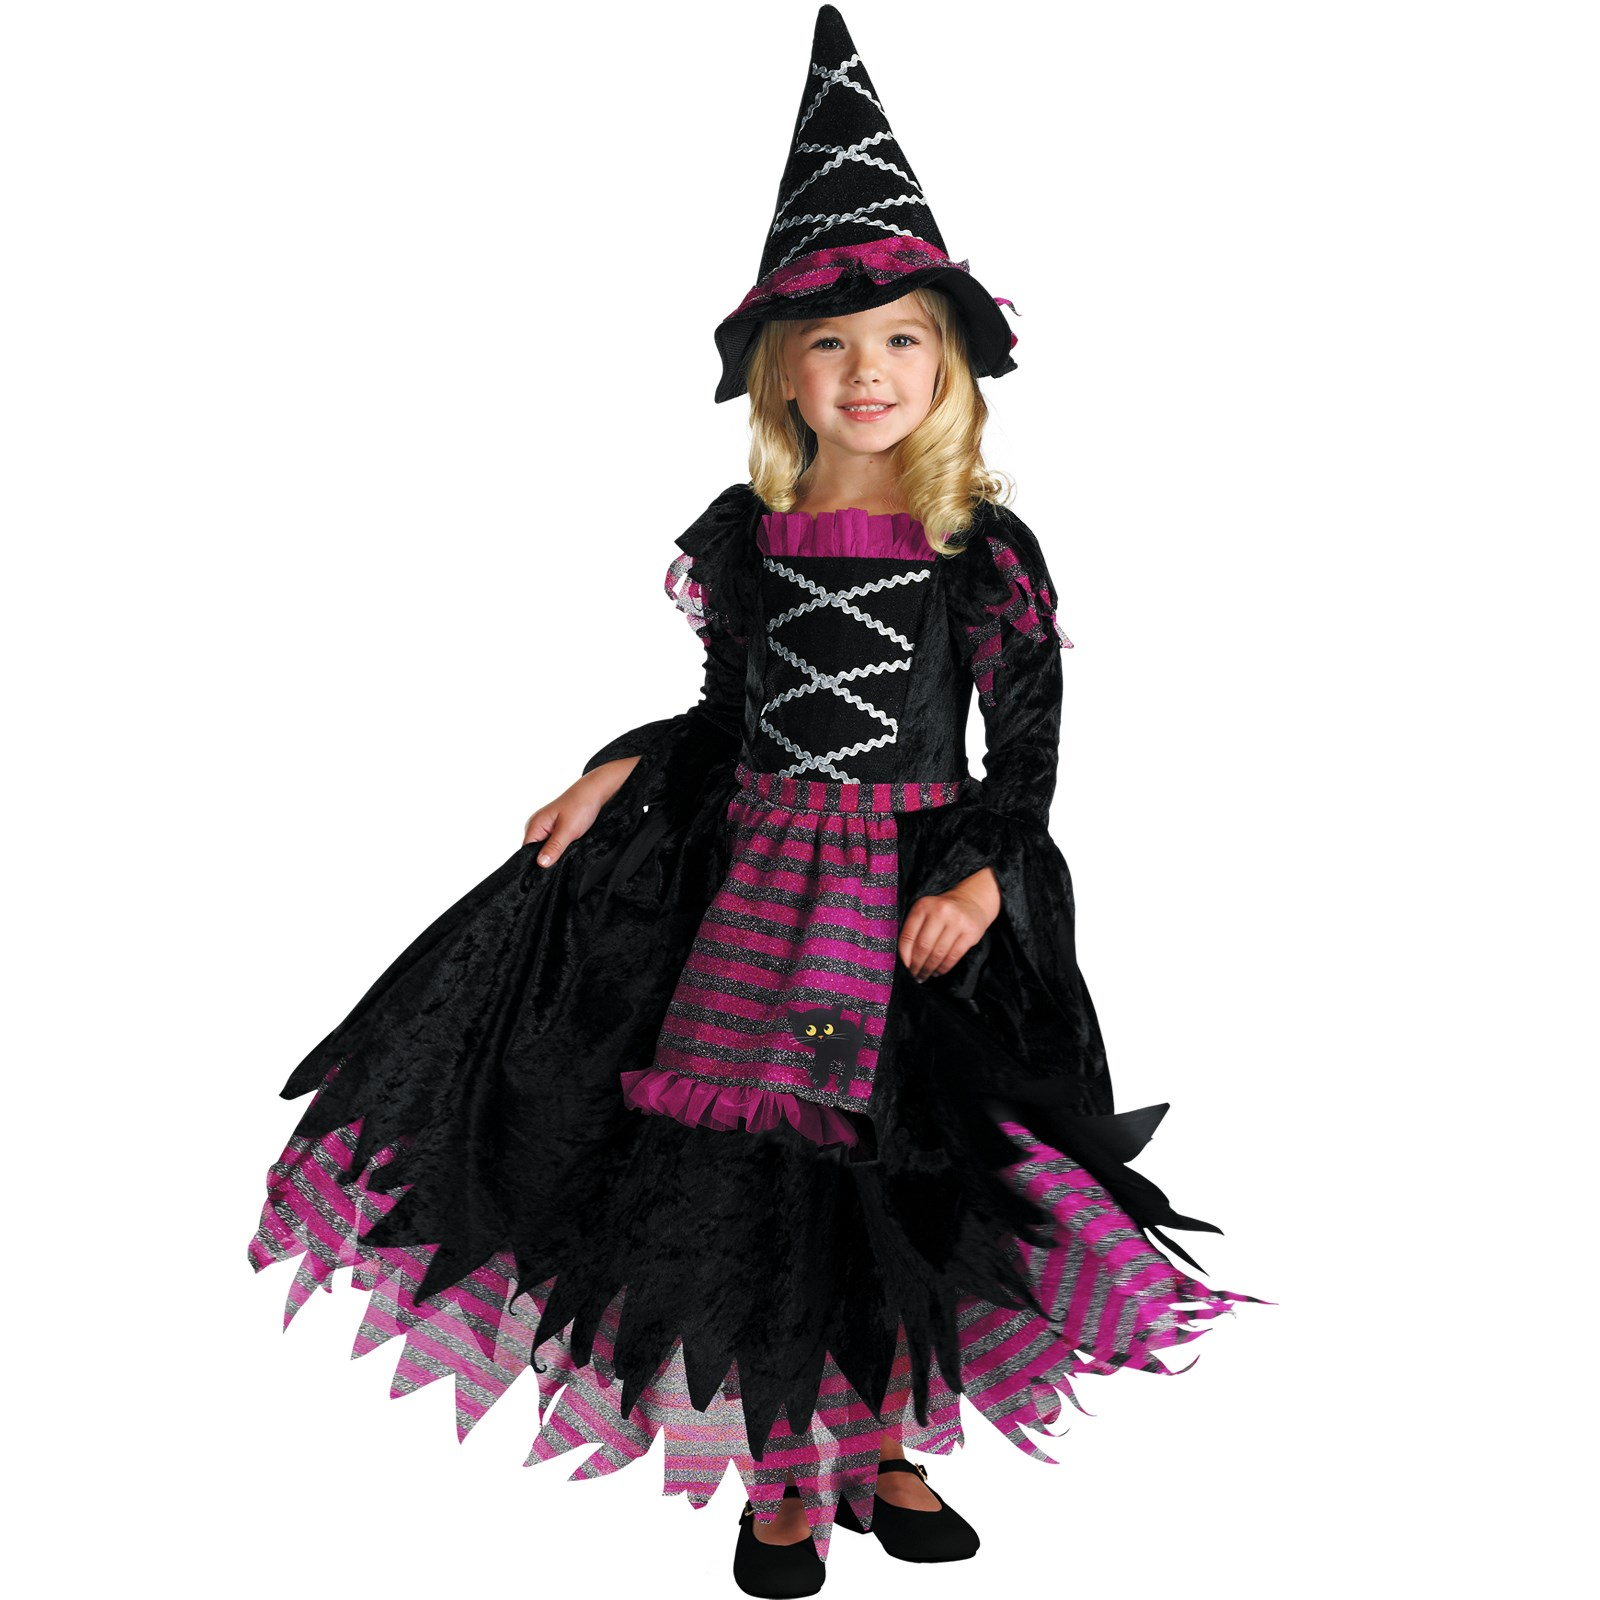 Toddler Halloween Costumes | BuyCostumes.com